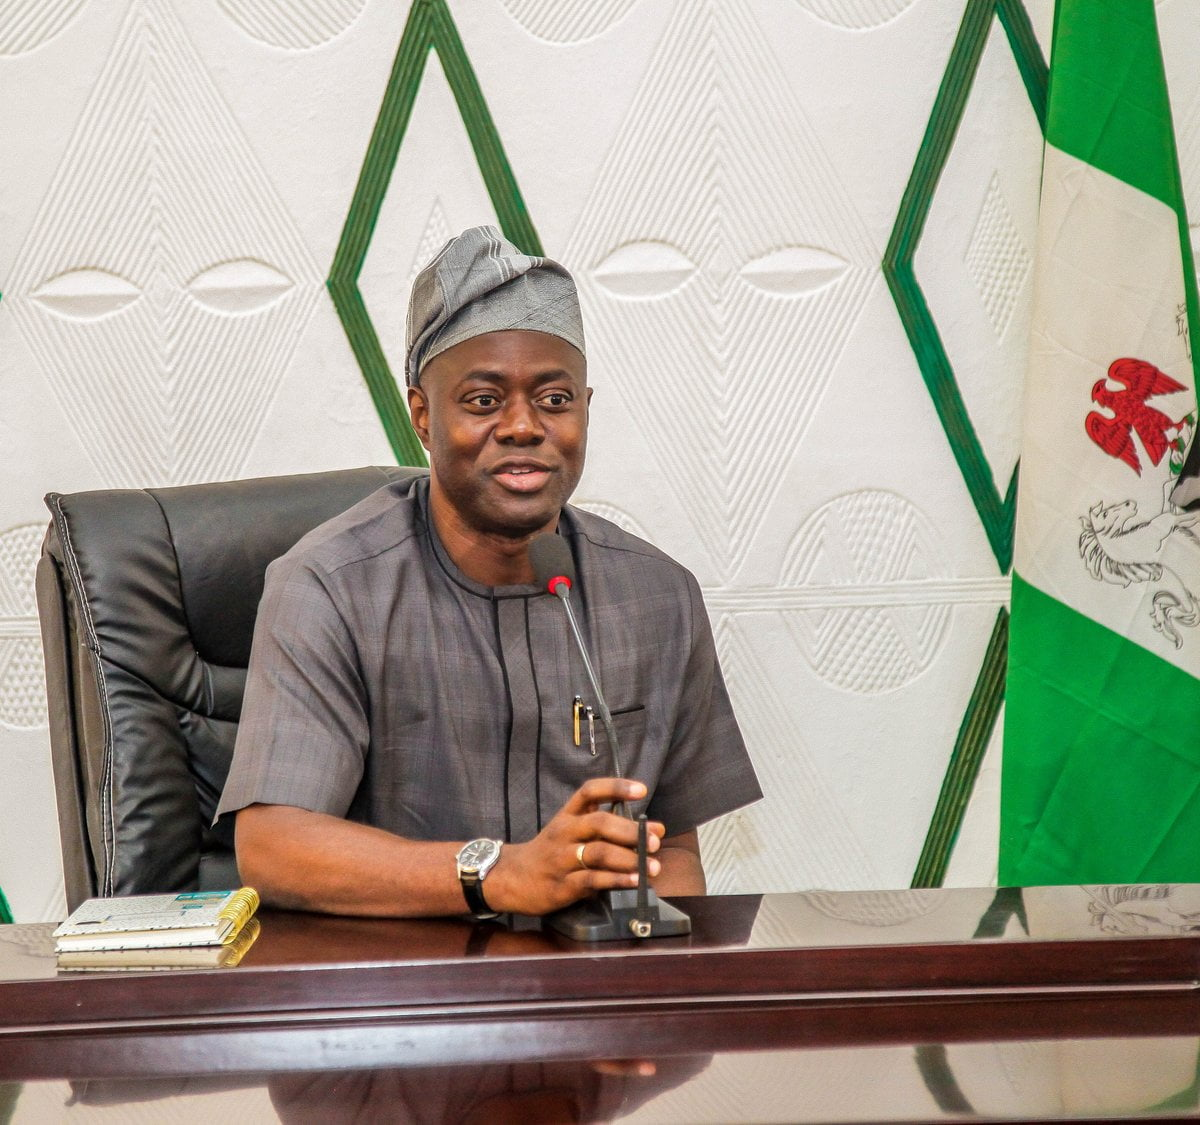 Do not harass members of public, be professional- Makinde warns Amotekun Corps personnel